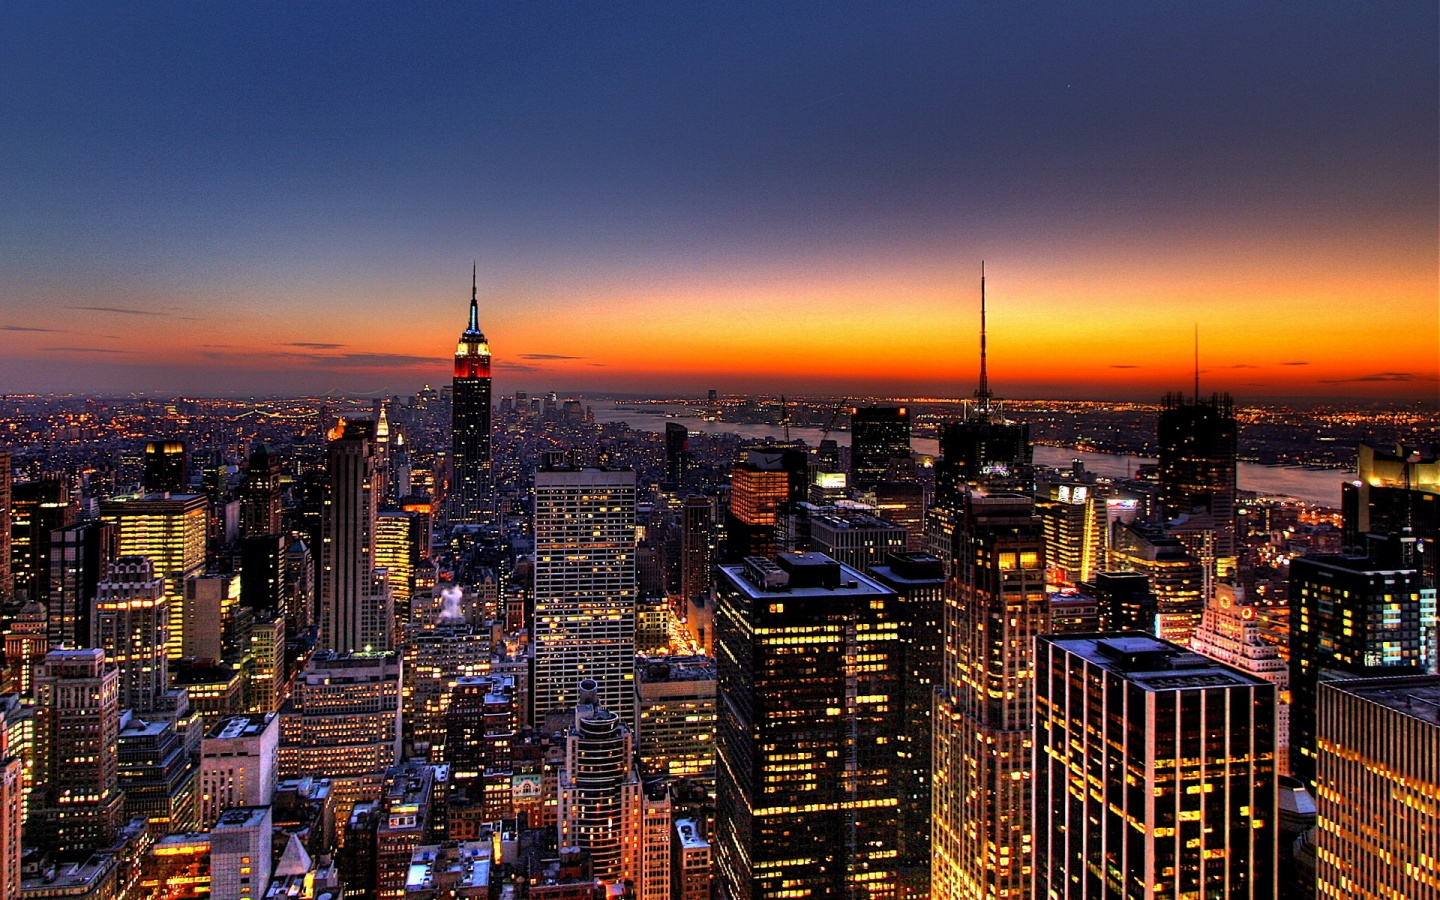 new_york_landscape_by_morgadu.jpg : 포인트사진